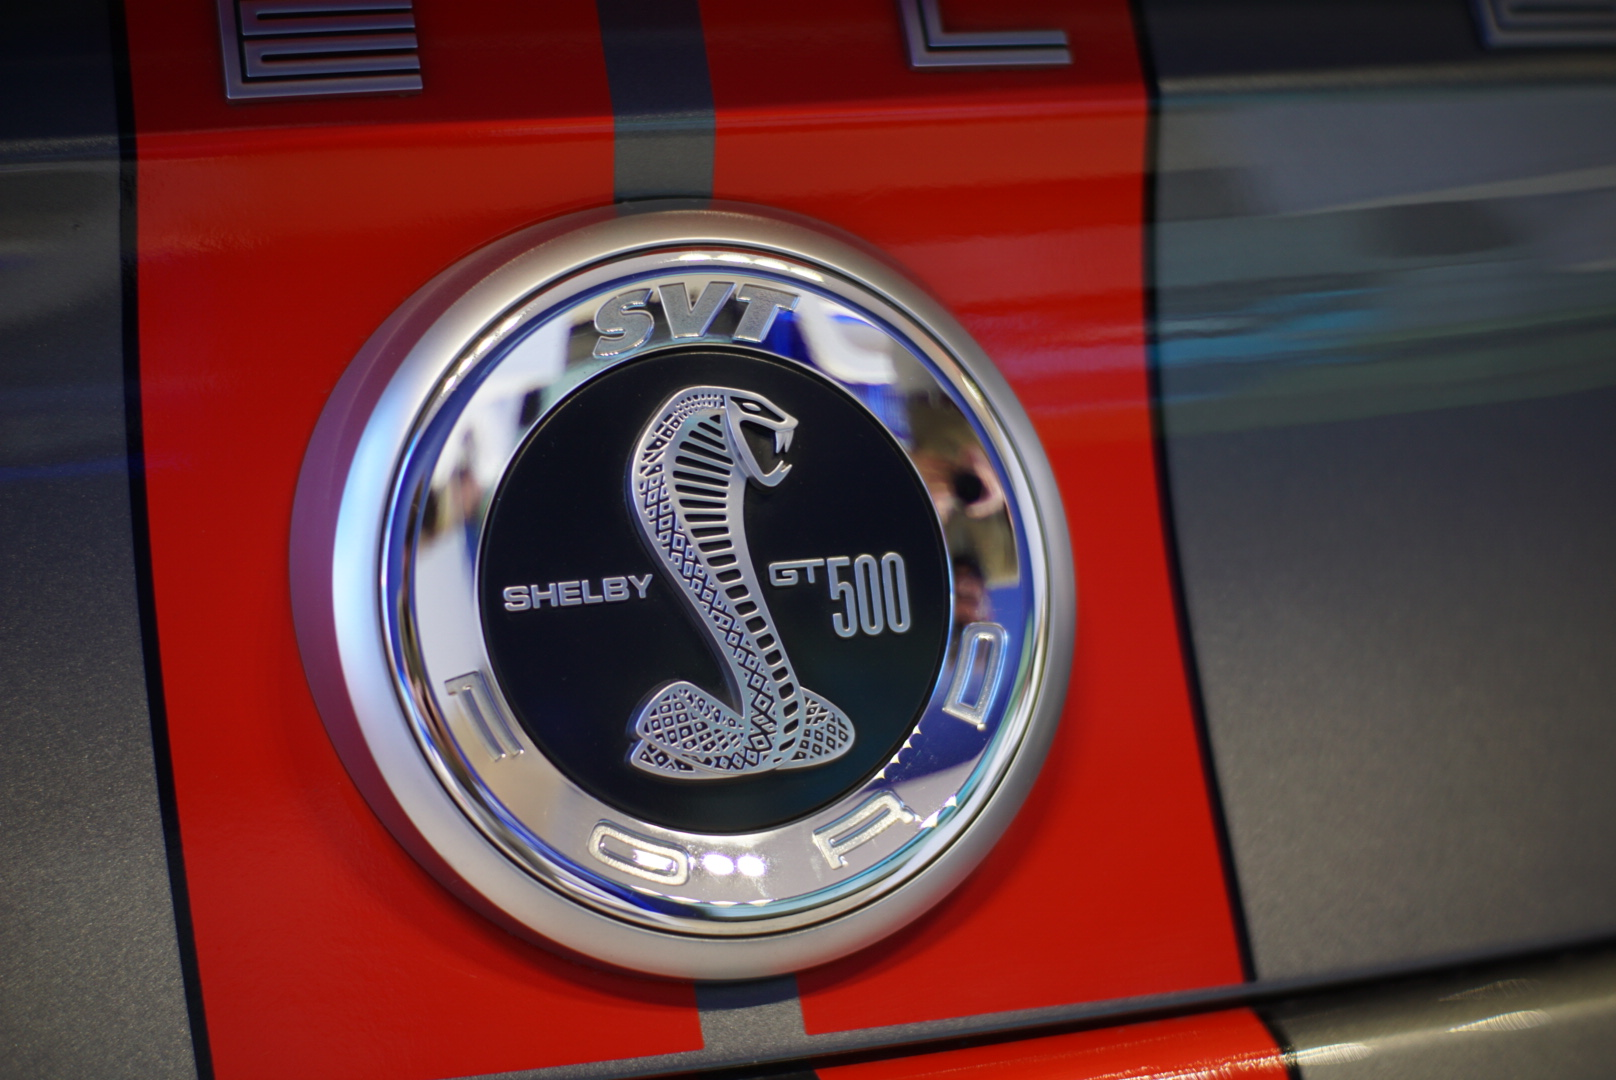 Mustang Shelby rear badge